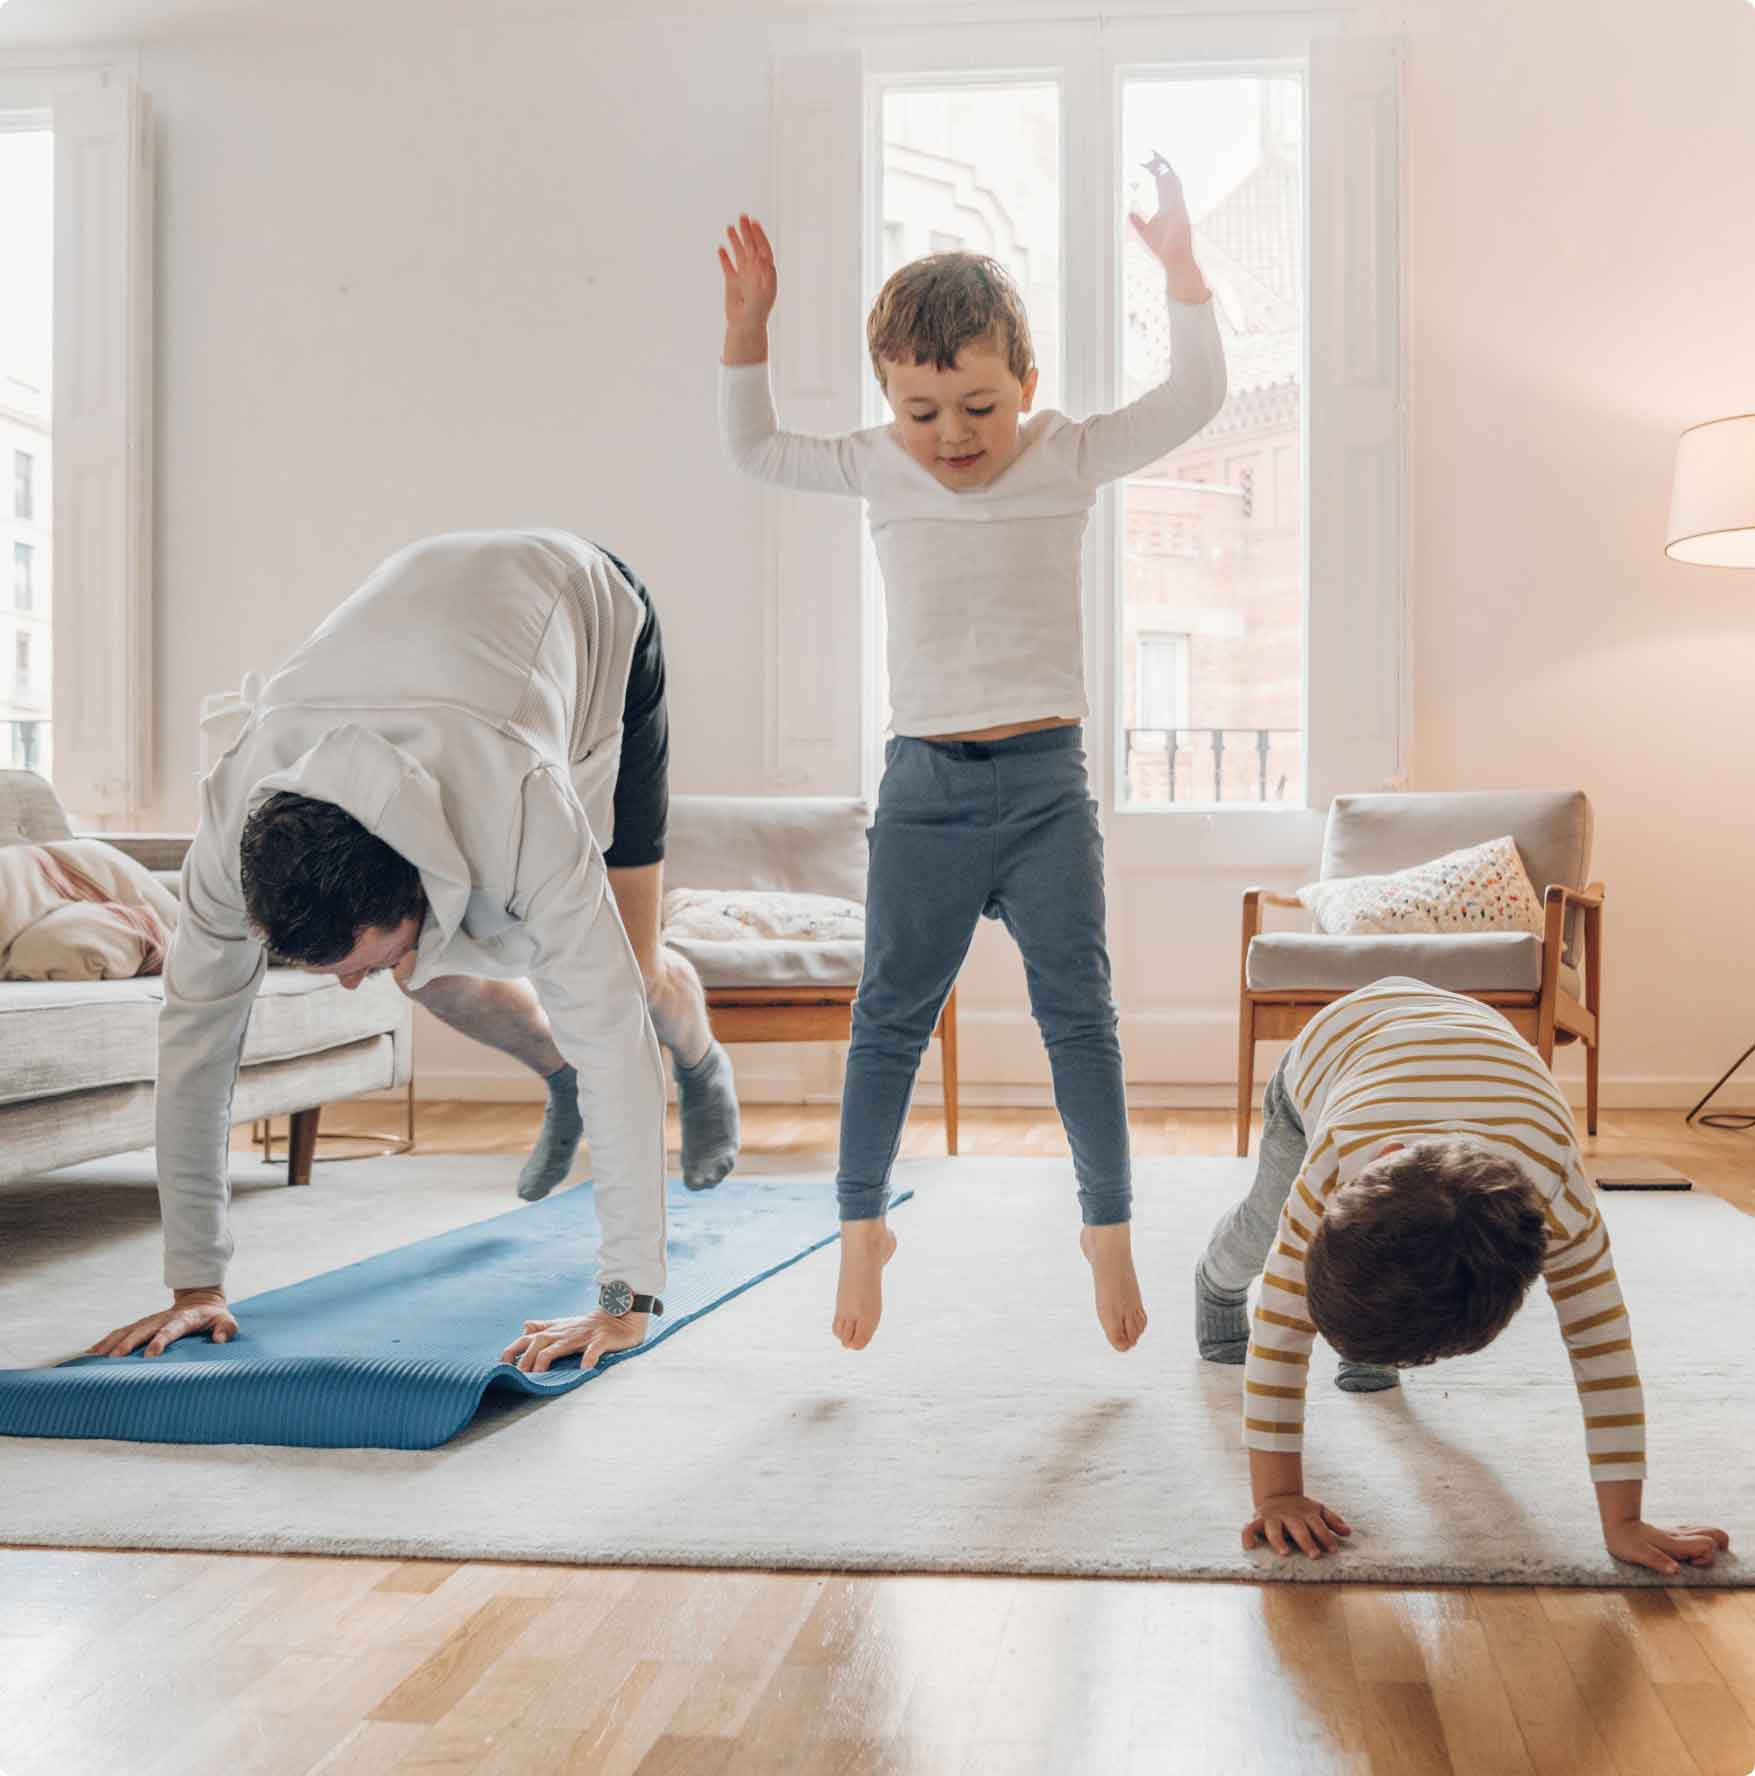 Father and sons exercising together in their living room